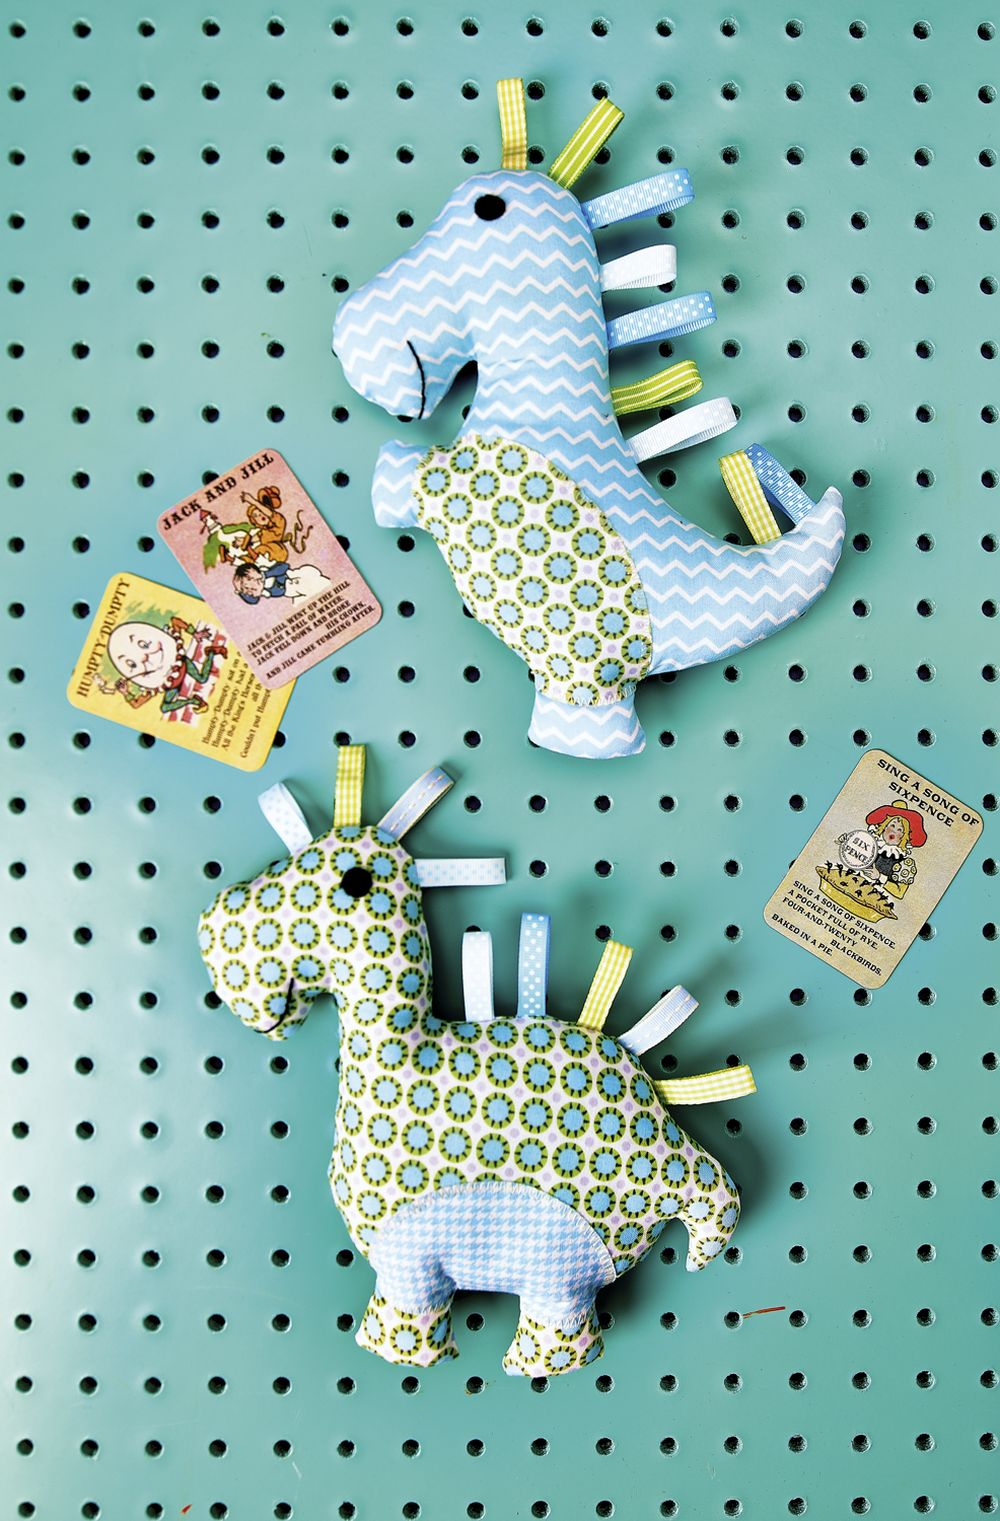 Baby Dolls Pics Dino Toys Free Sewing Patterns Sew Magazine